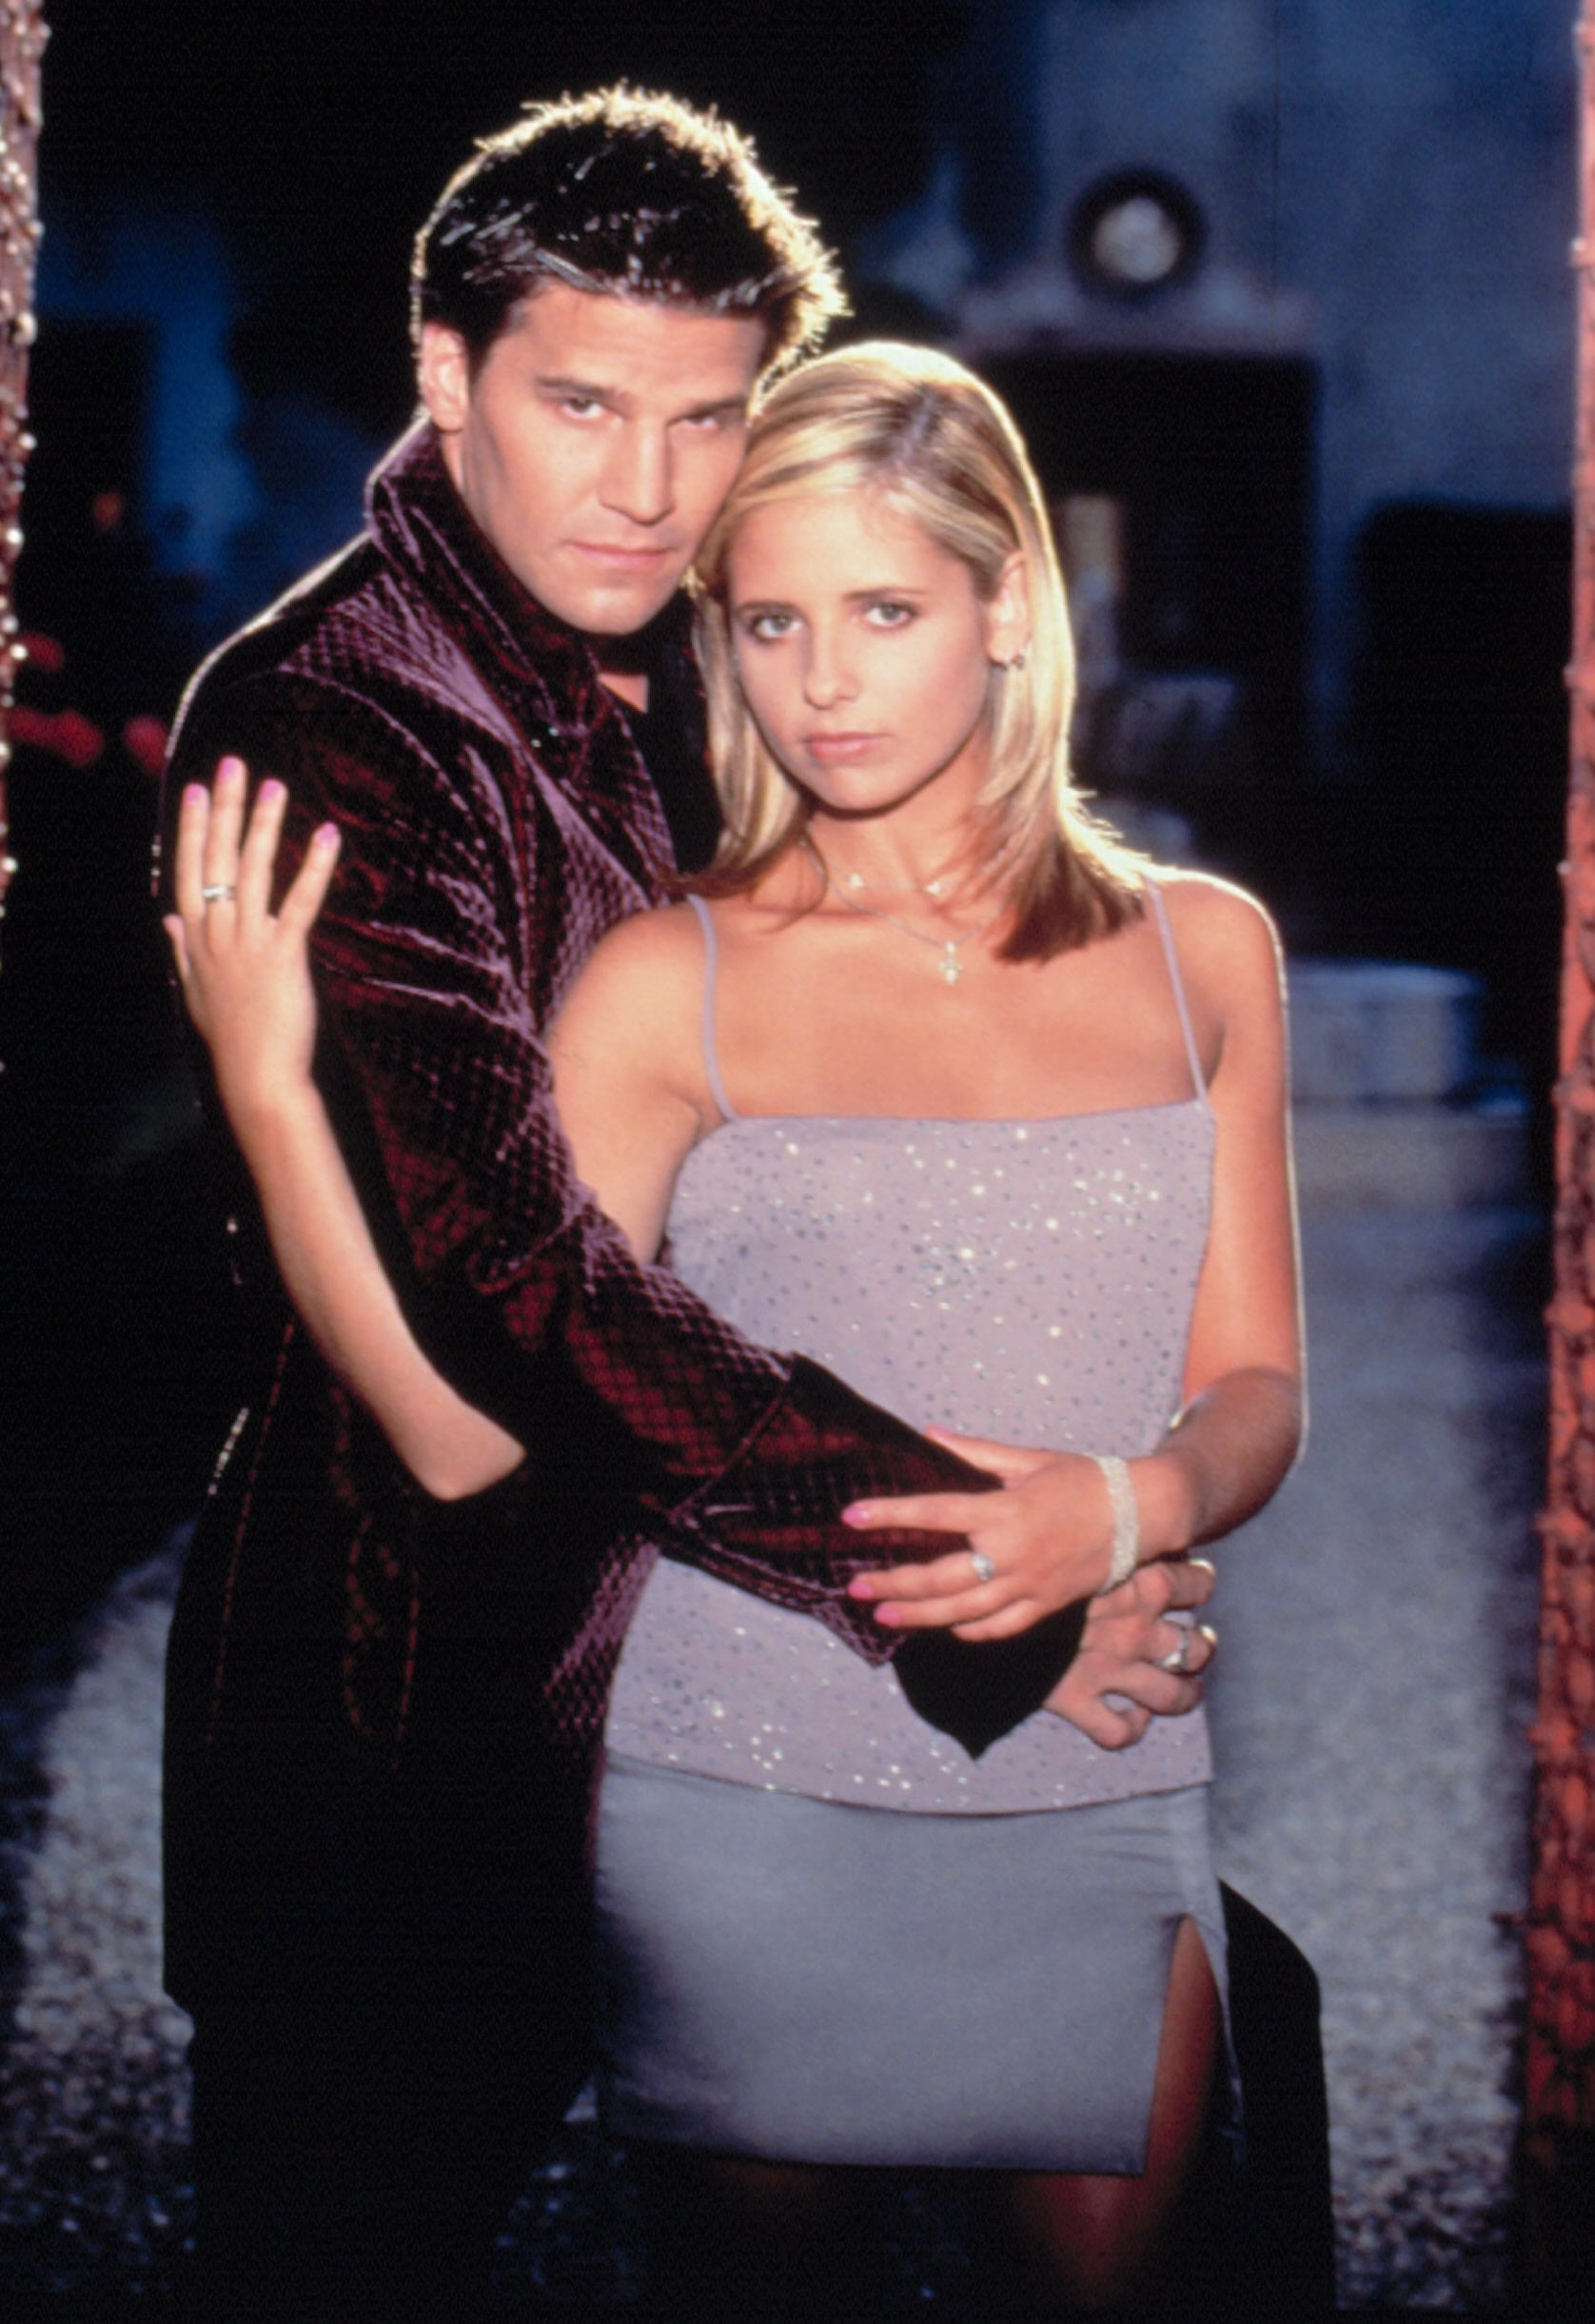 BUFFY THE VAMPIRE SLAYER, David Boreanaz, Sarah Michelle Gellar, 1997-2003, season 2, . TM and Copyright  20th Century Fox Film Corp. All rights reserved. Courtesy: Everett Collection.